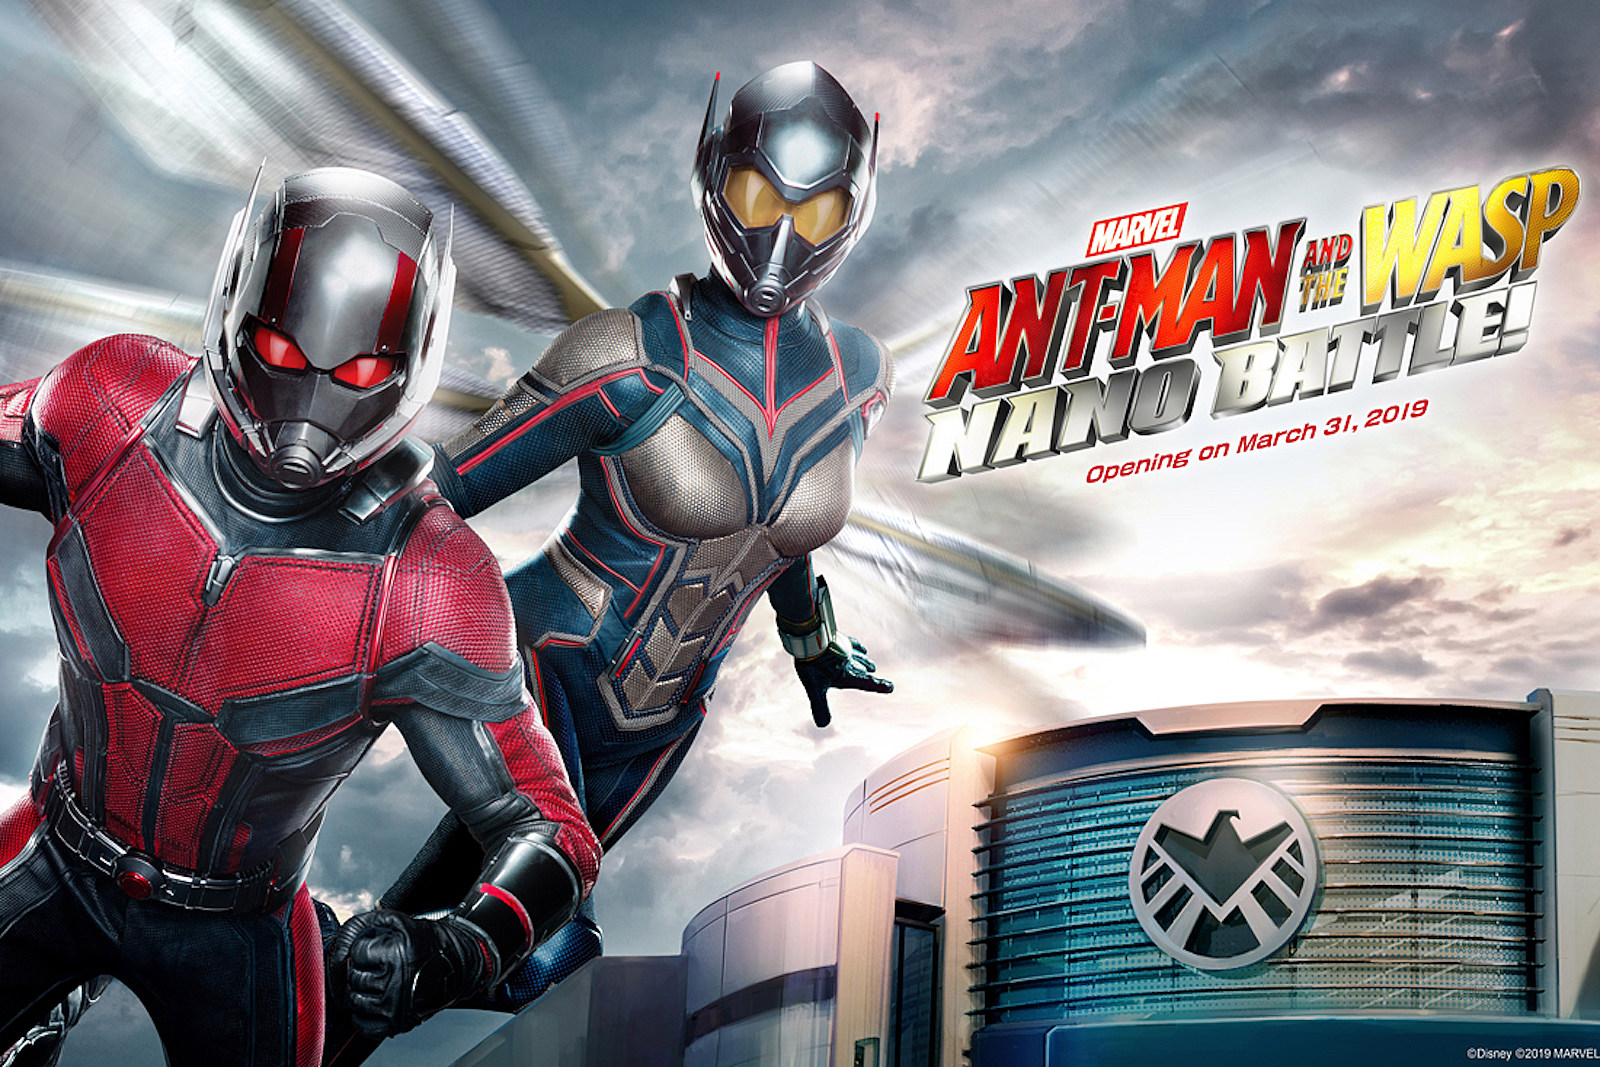 This Video Of Disneys Ant Man And The Wasp Ride Looks Amazing